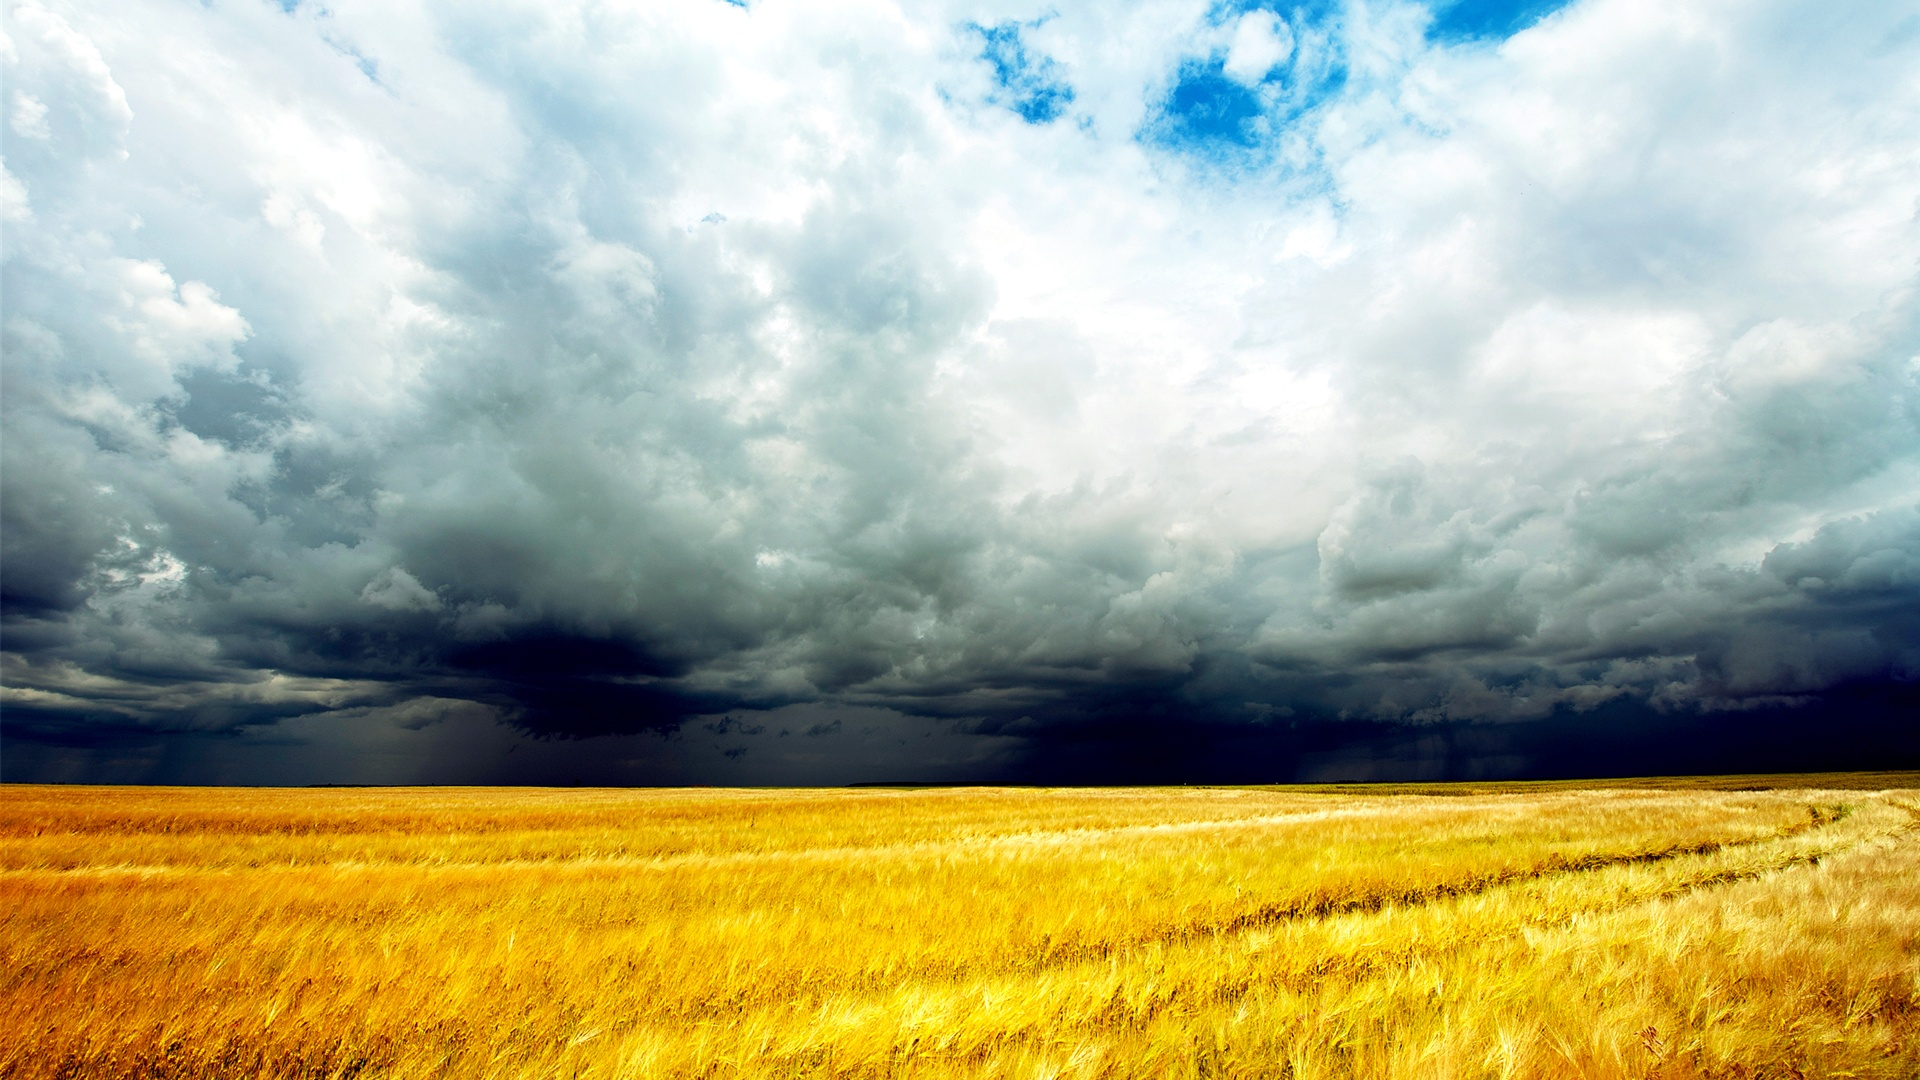 wallpaper golden wheat fields  clouds sky  storm coming 2560x1600 hd picture  image